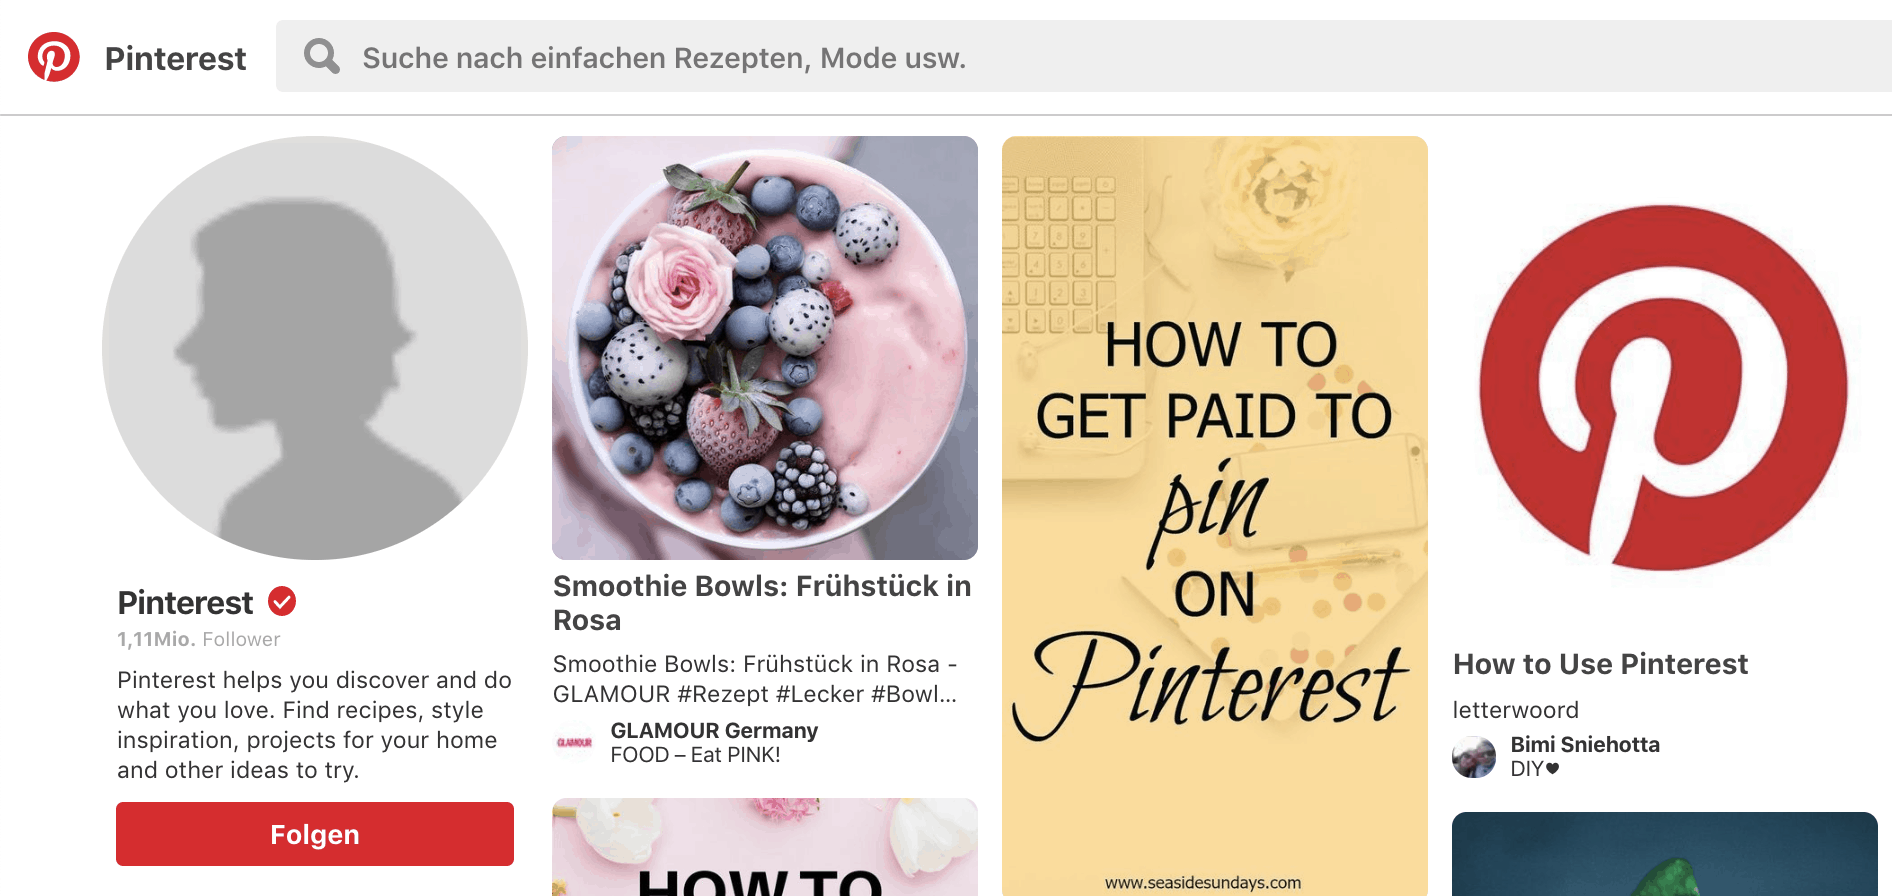 pinterest marketing tipps